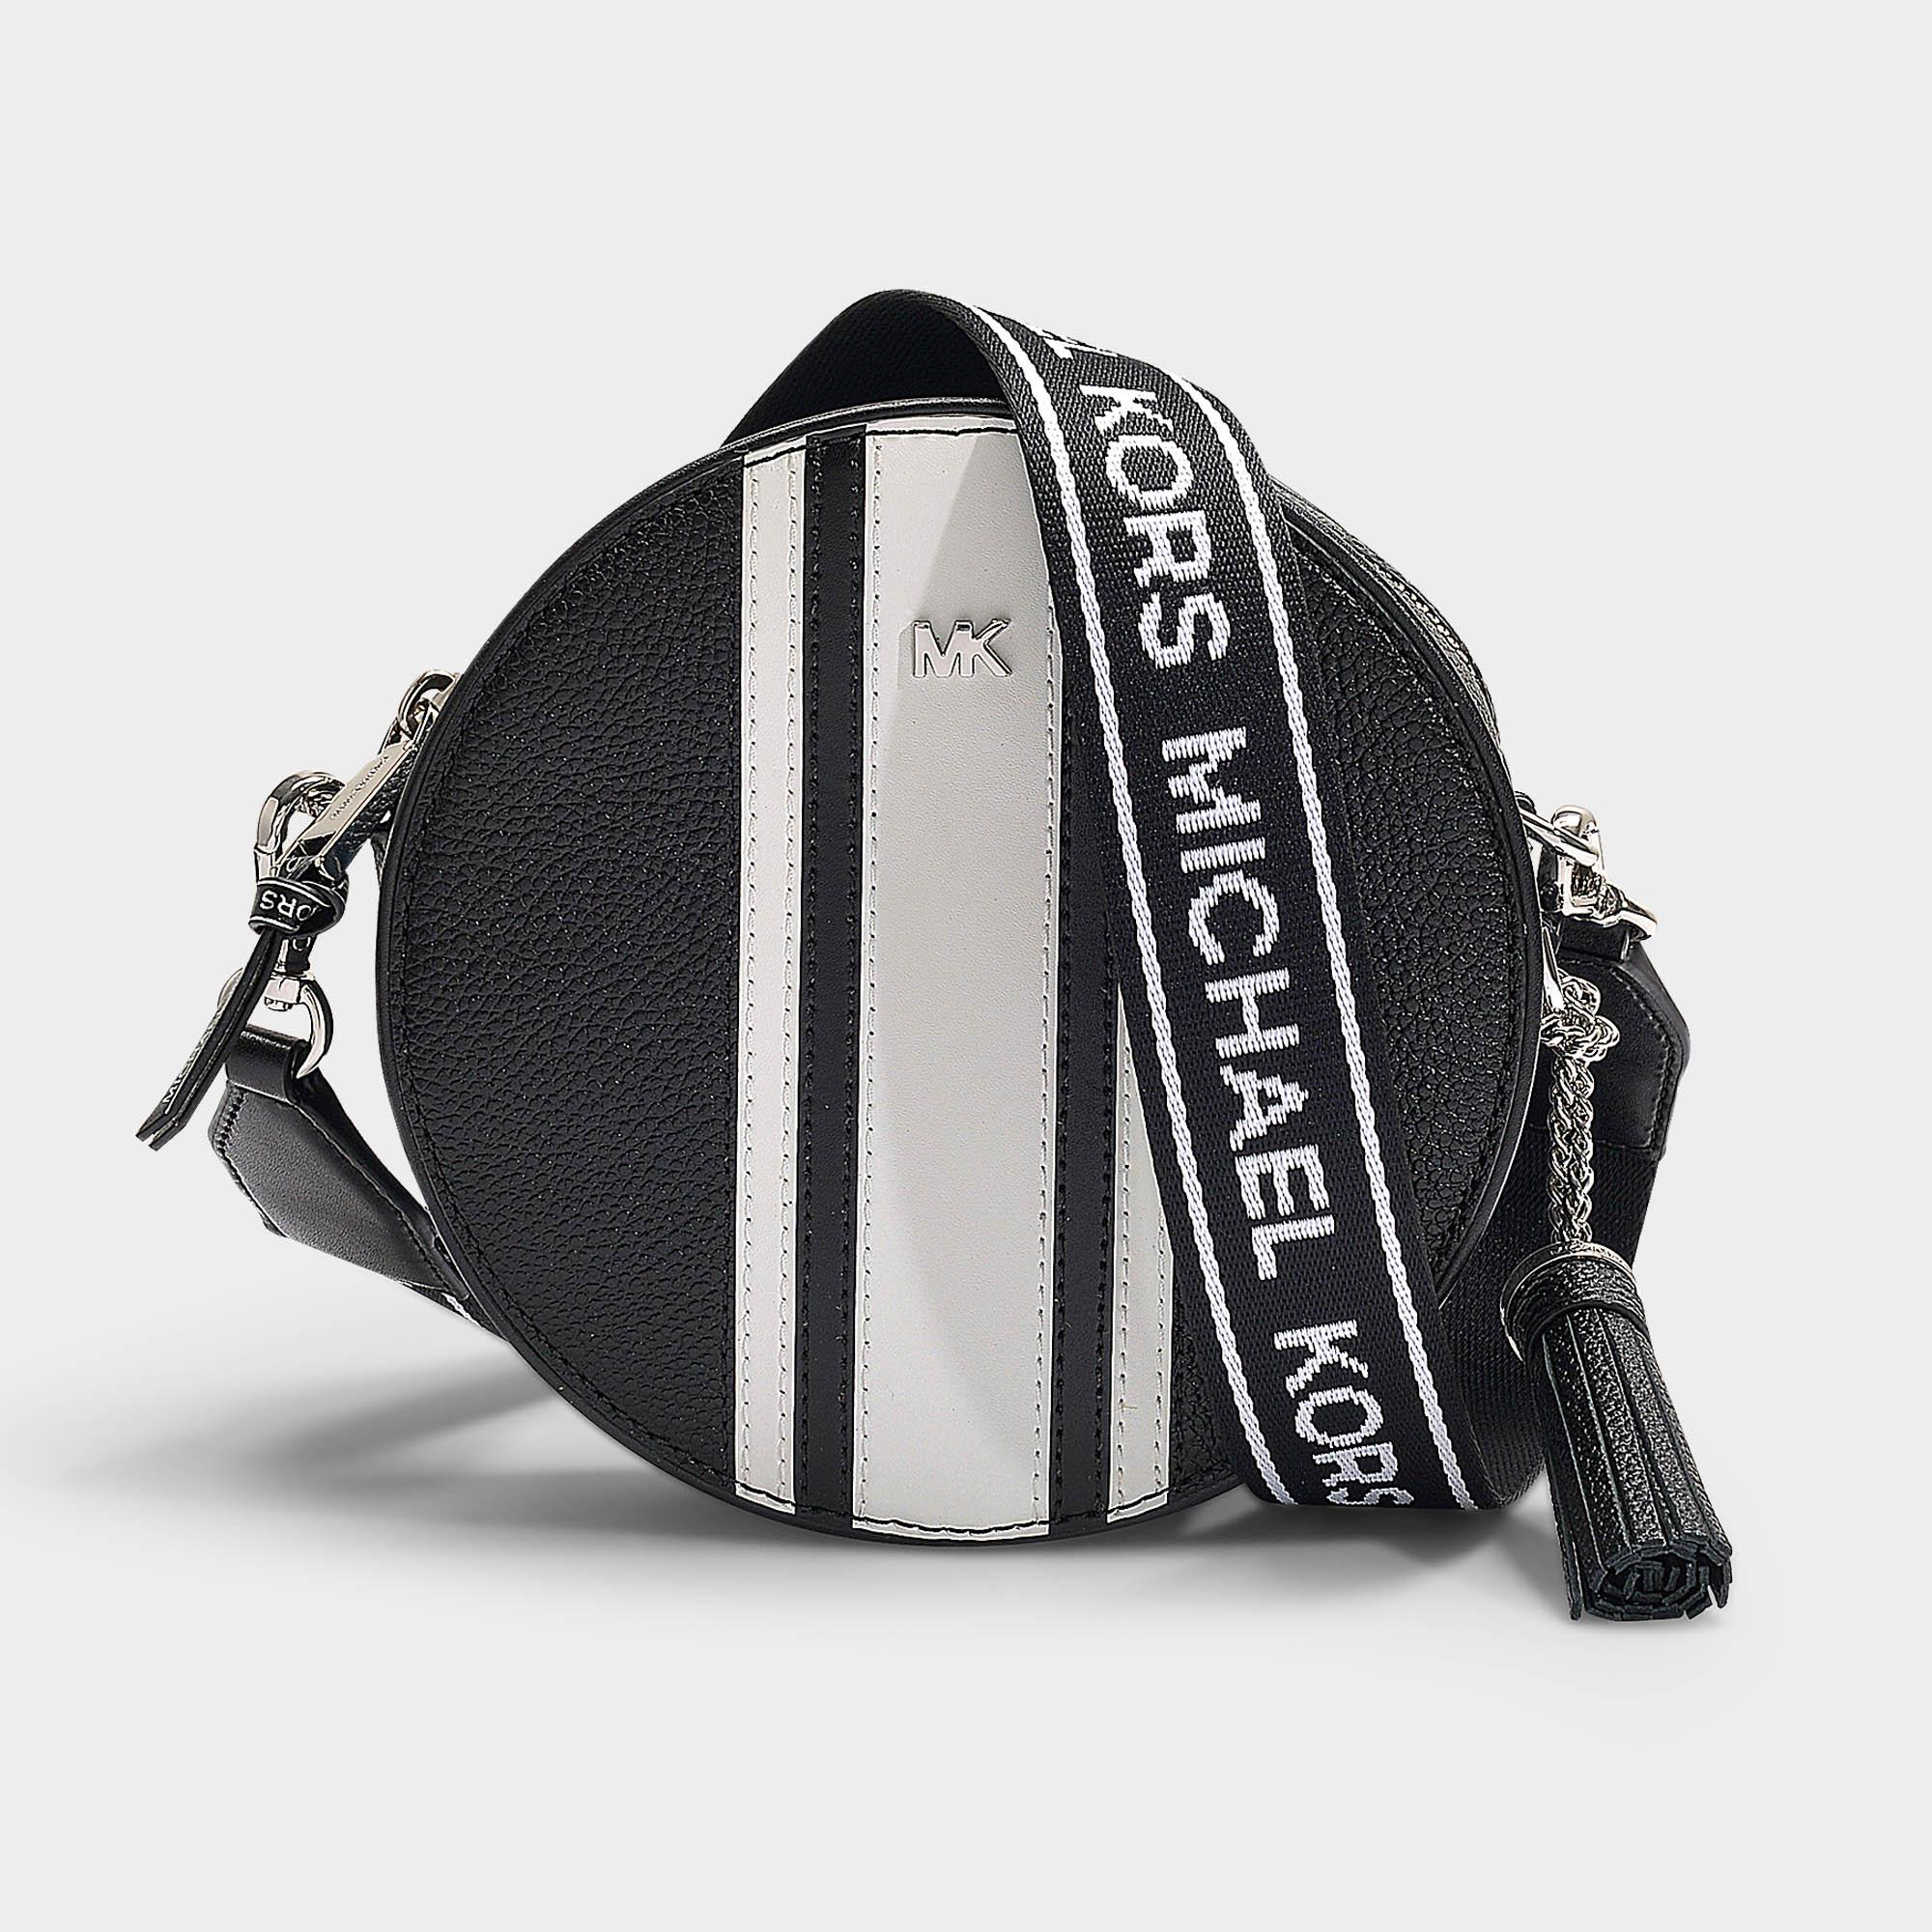 cadbb4471a5b39 MICHAEL Michael Kors - Crossbodies Medium Canteen Bag In Black And Optic  White Grained Calfskin -. View fullscreen